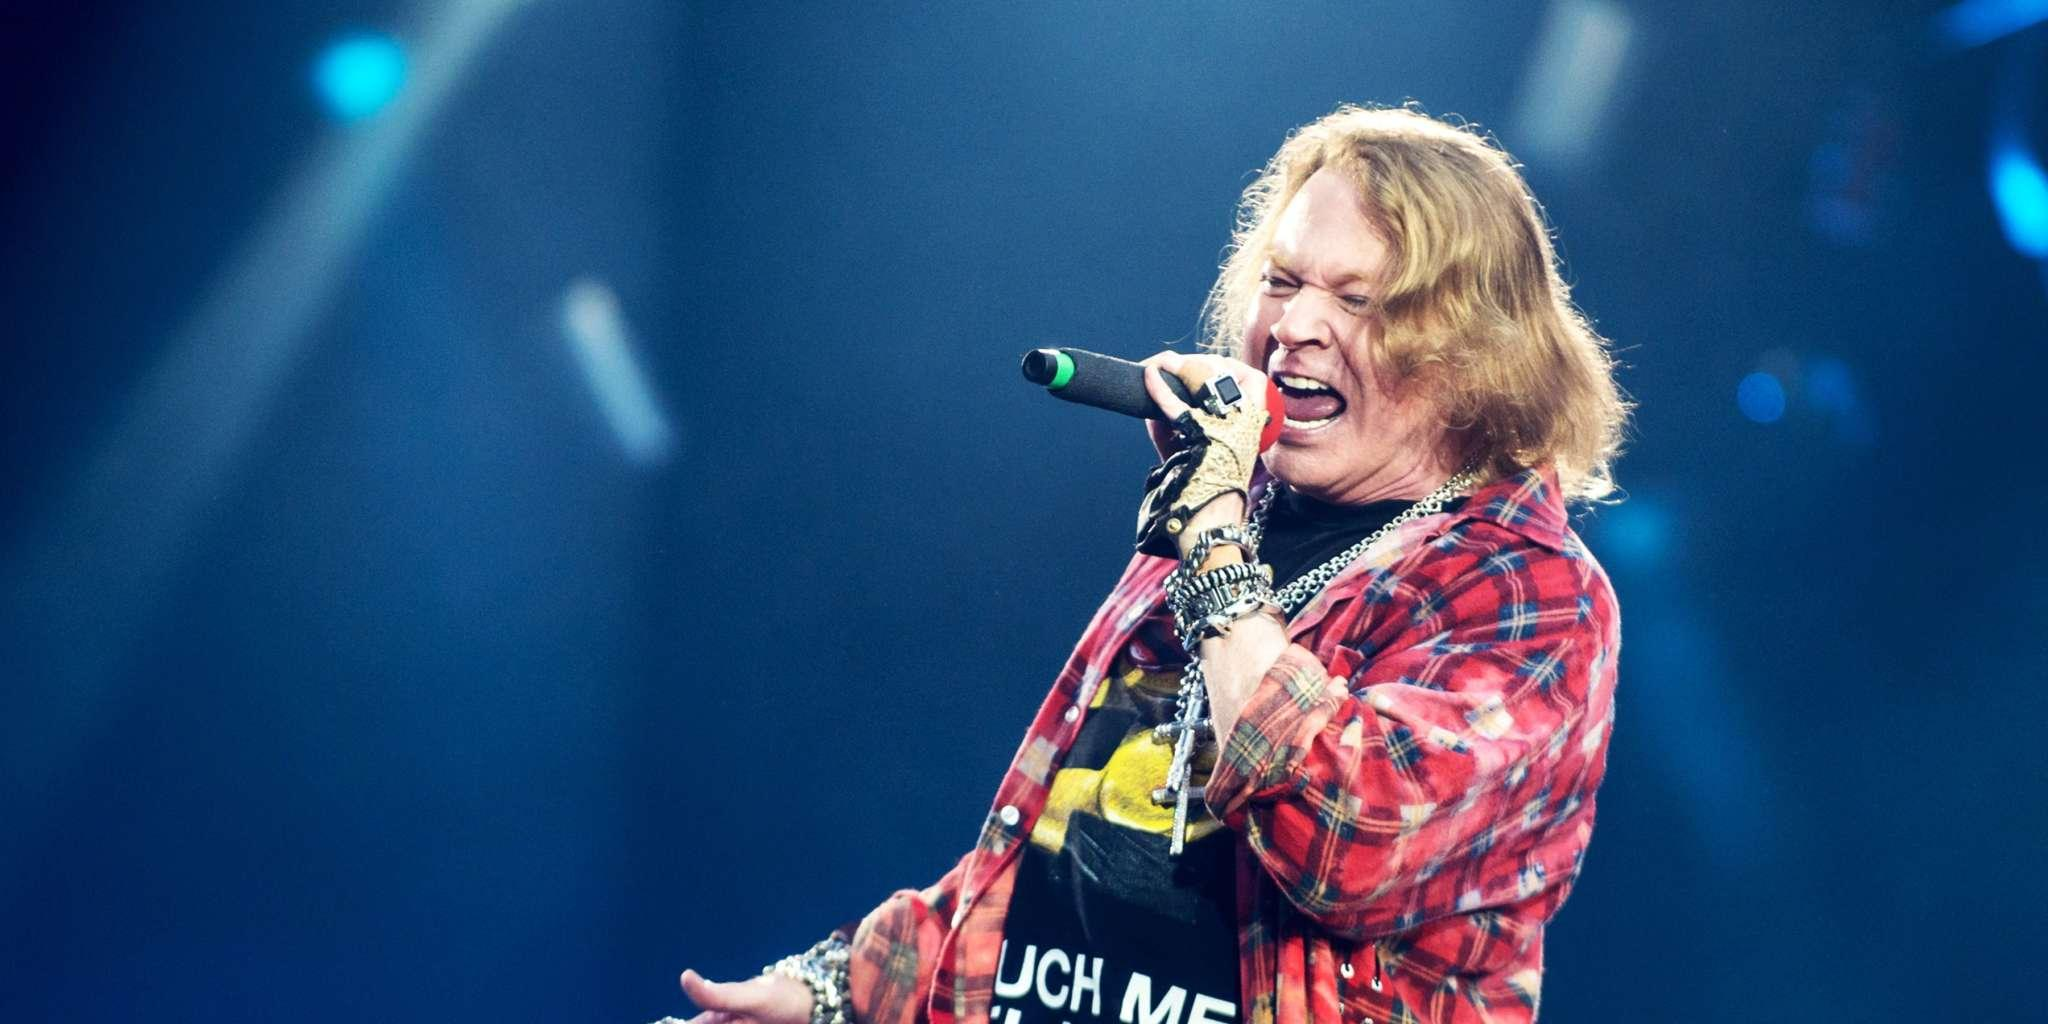 Axl Rose Slams 'Coward' Surgeon General Jerome Adams After He Refuses To Tell People To Avoid Large 4th Of July Gatherings Amid The Pandemic!